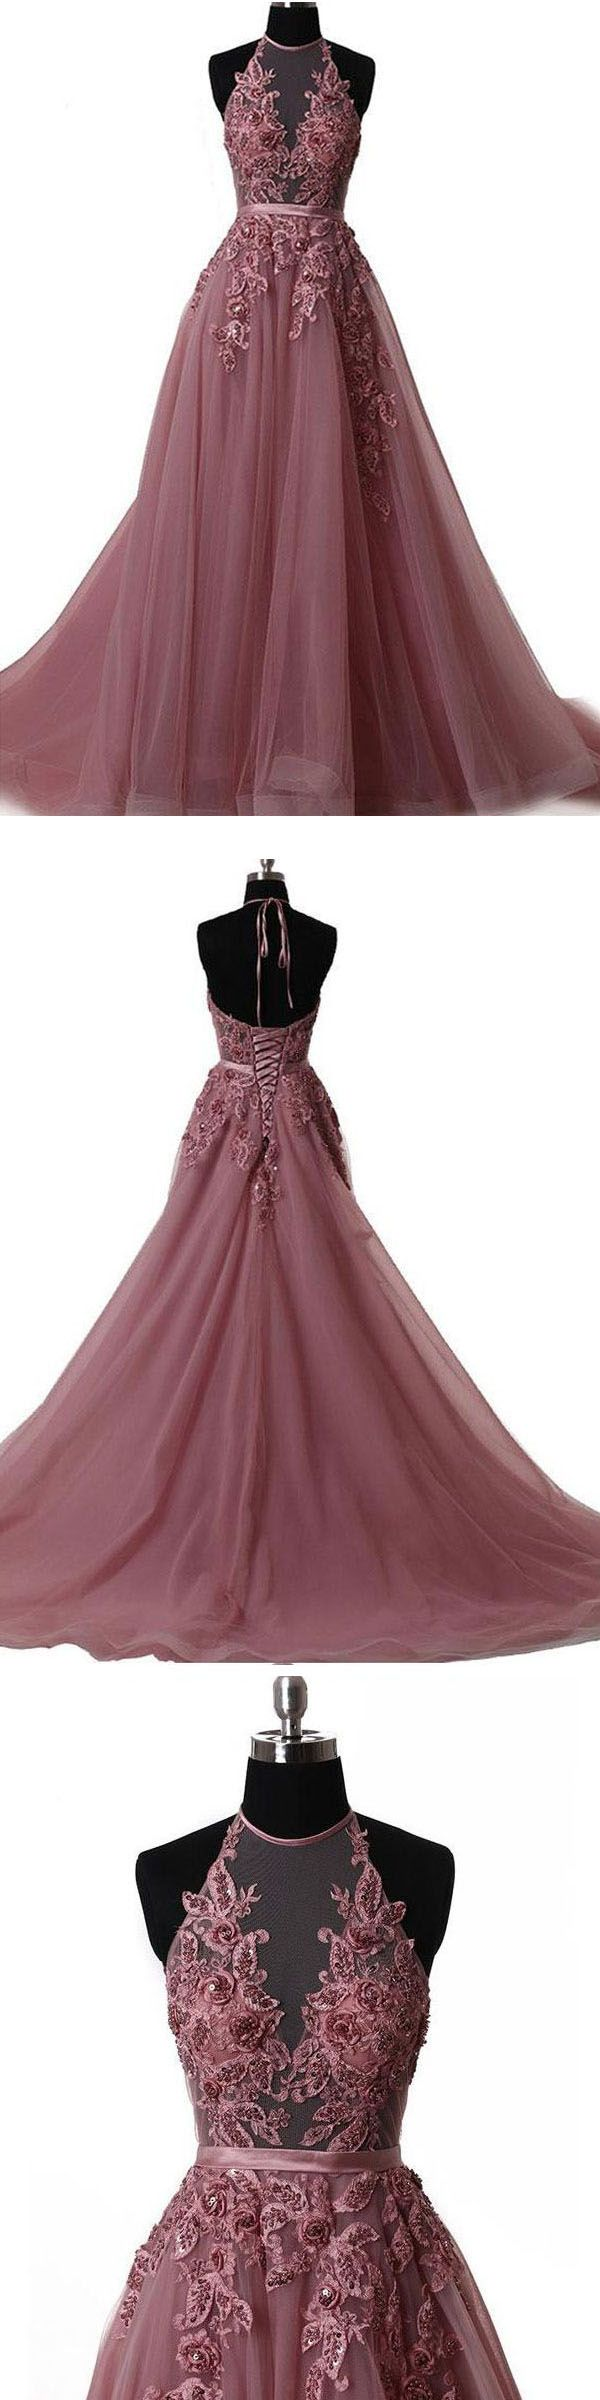 Halter Brush Train Simple Prom/Evening Dress With Lace Applique PG550 #promdress #eveningdress #dress #party #tulle #brush